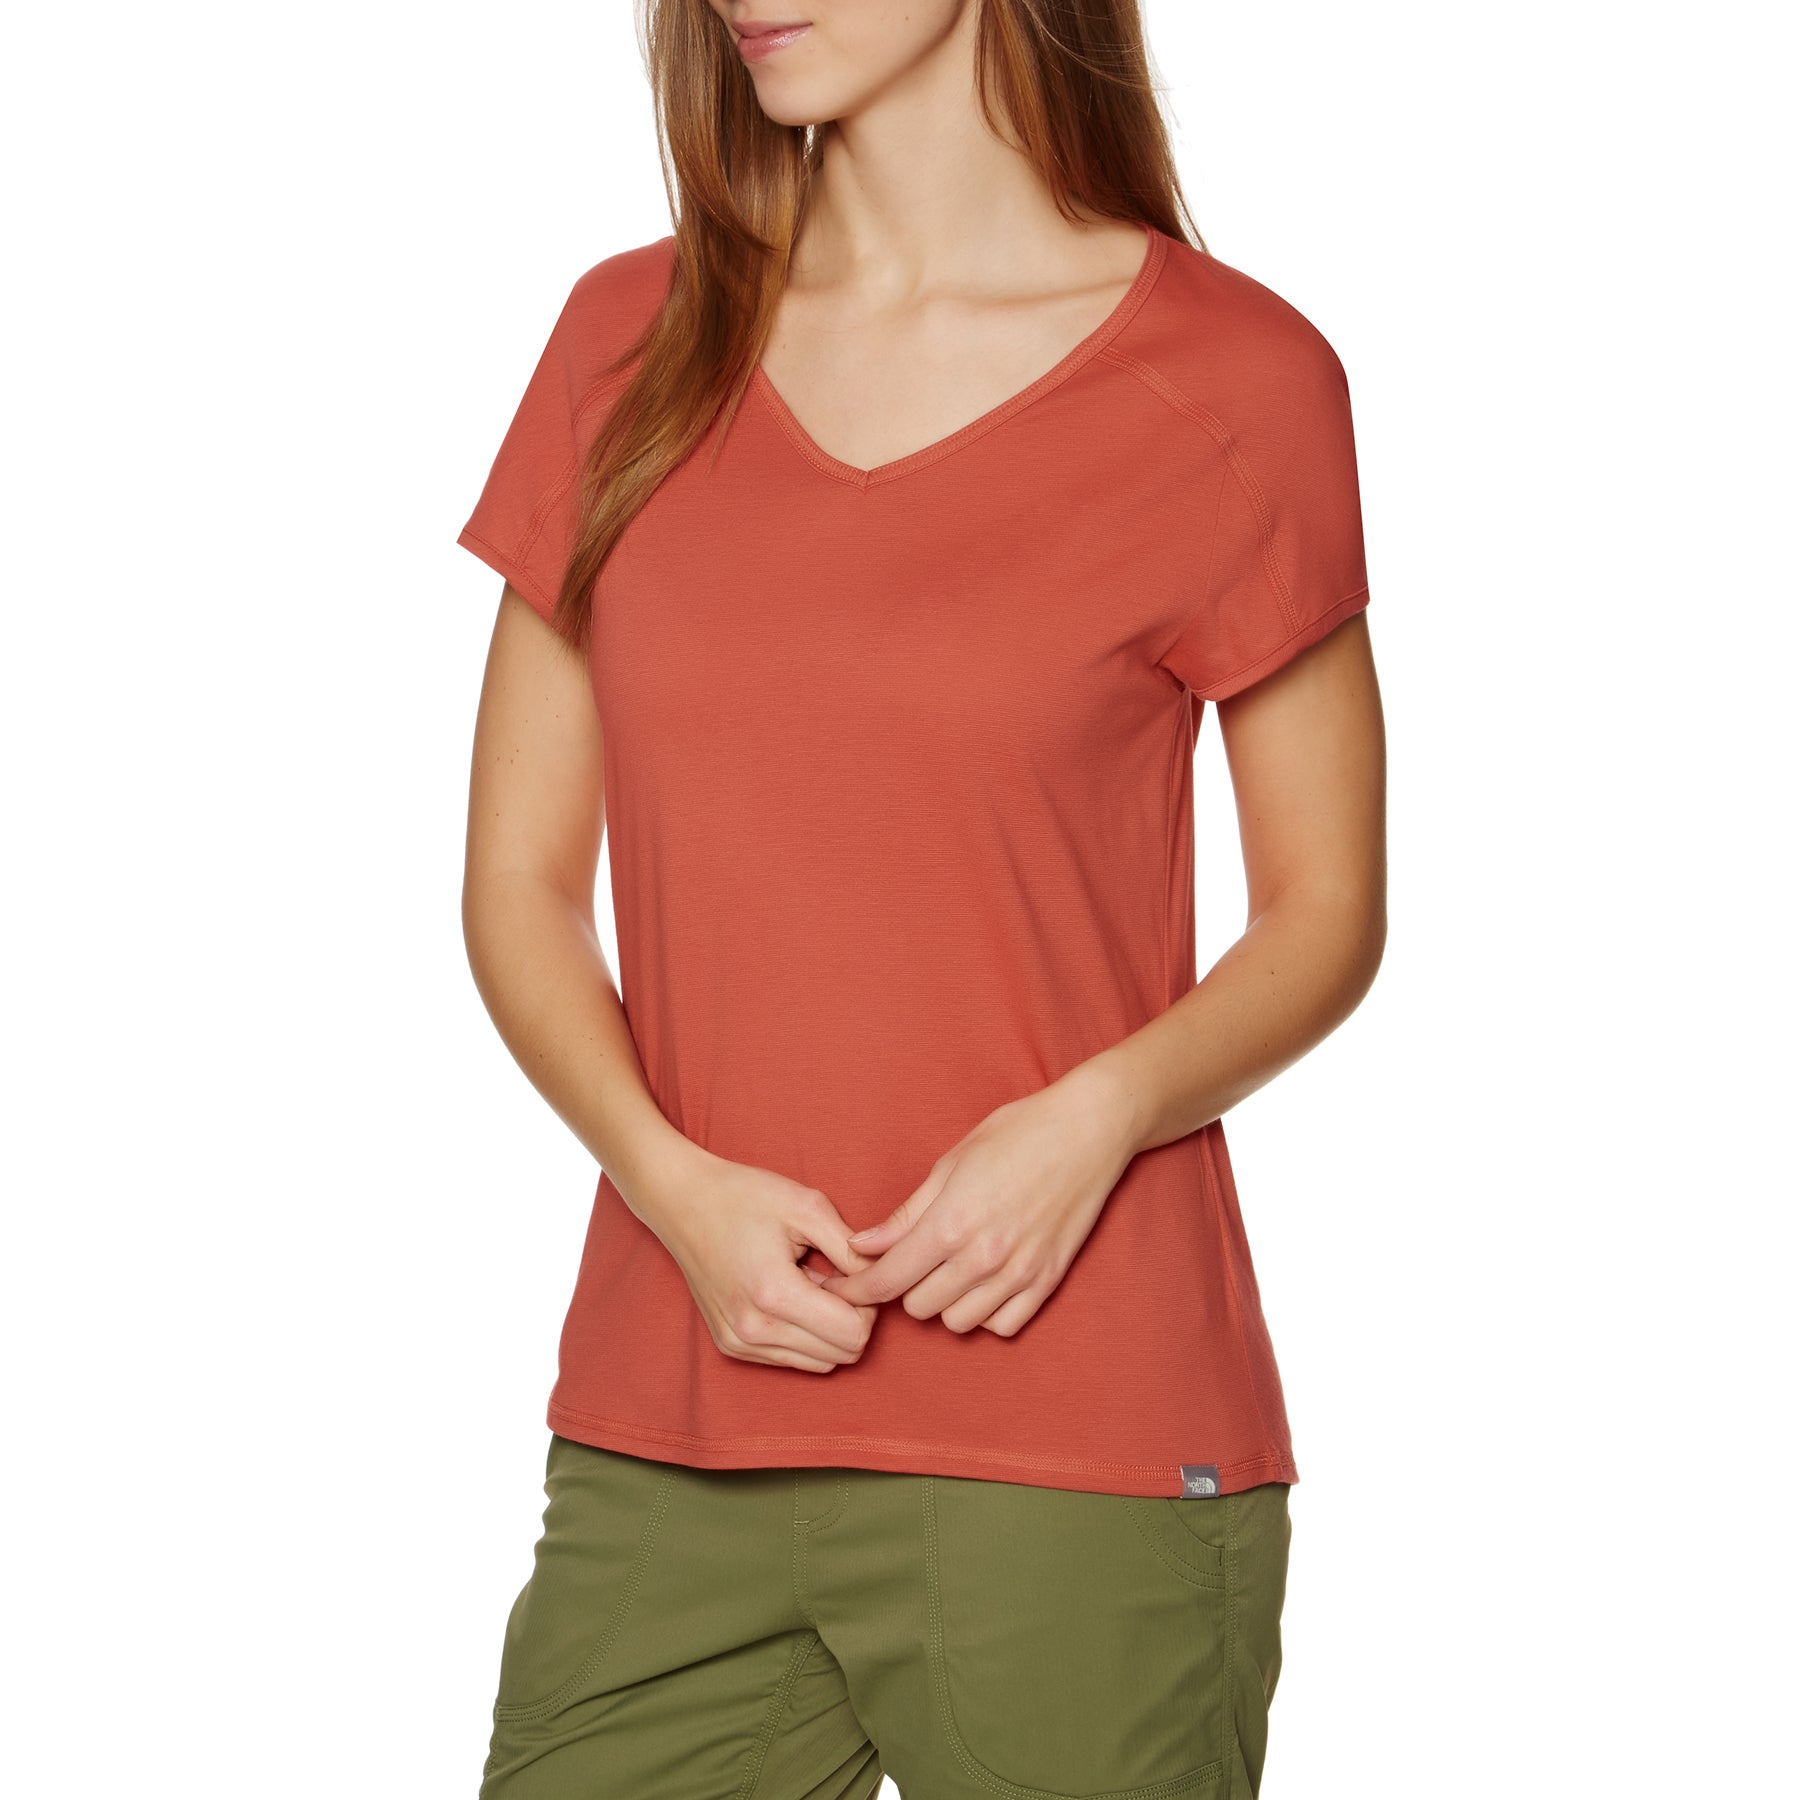 North Face Dayspring Womens Short Sleeve T-Shirt - Bossa Nova Red Sunbaked Red